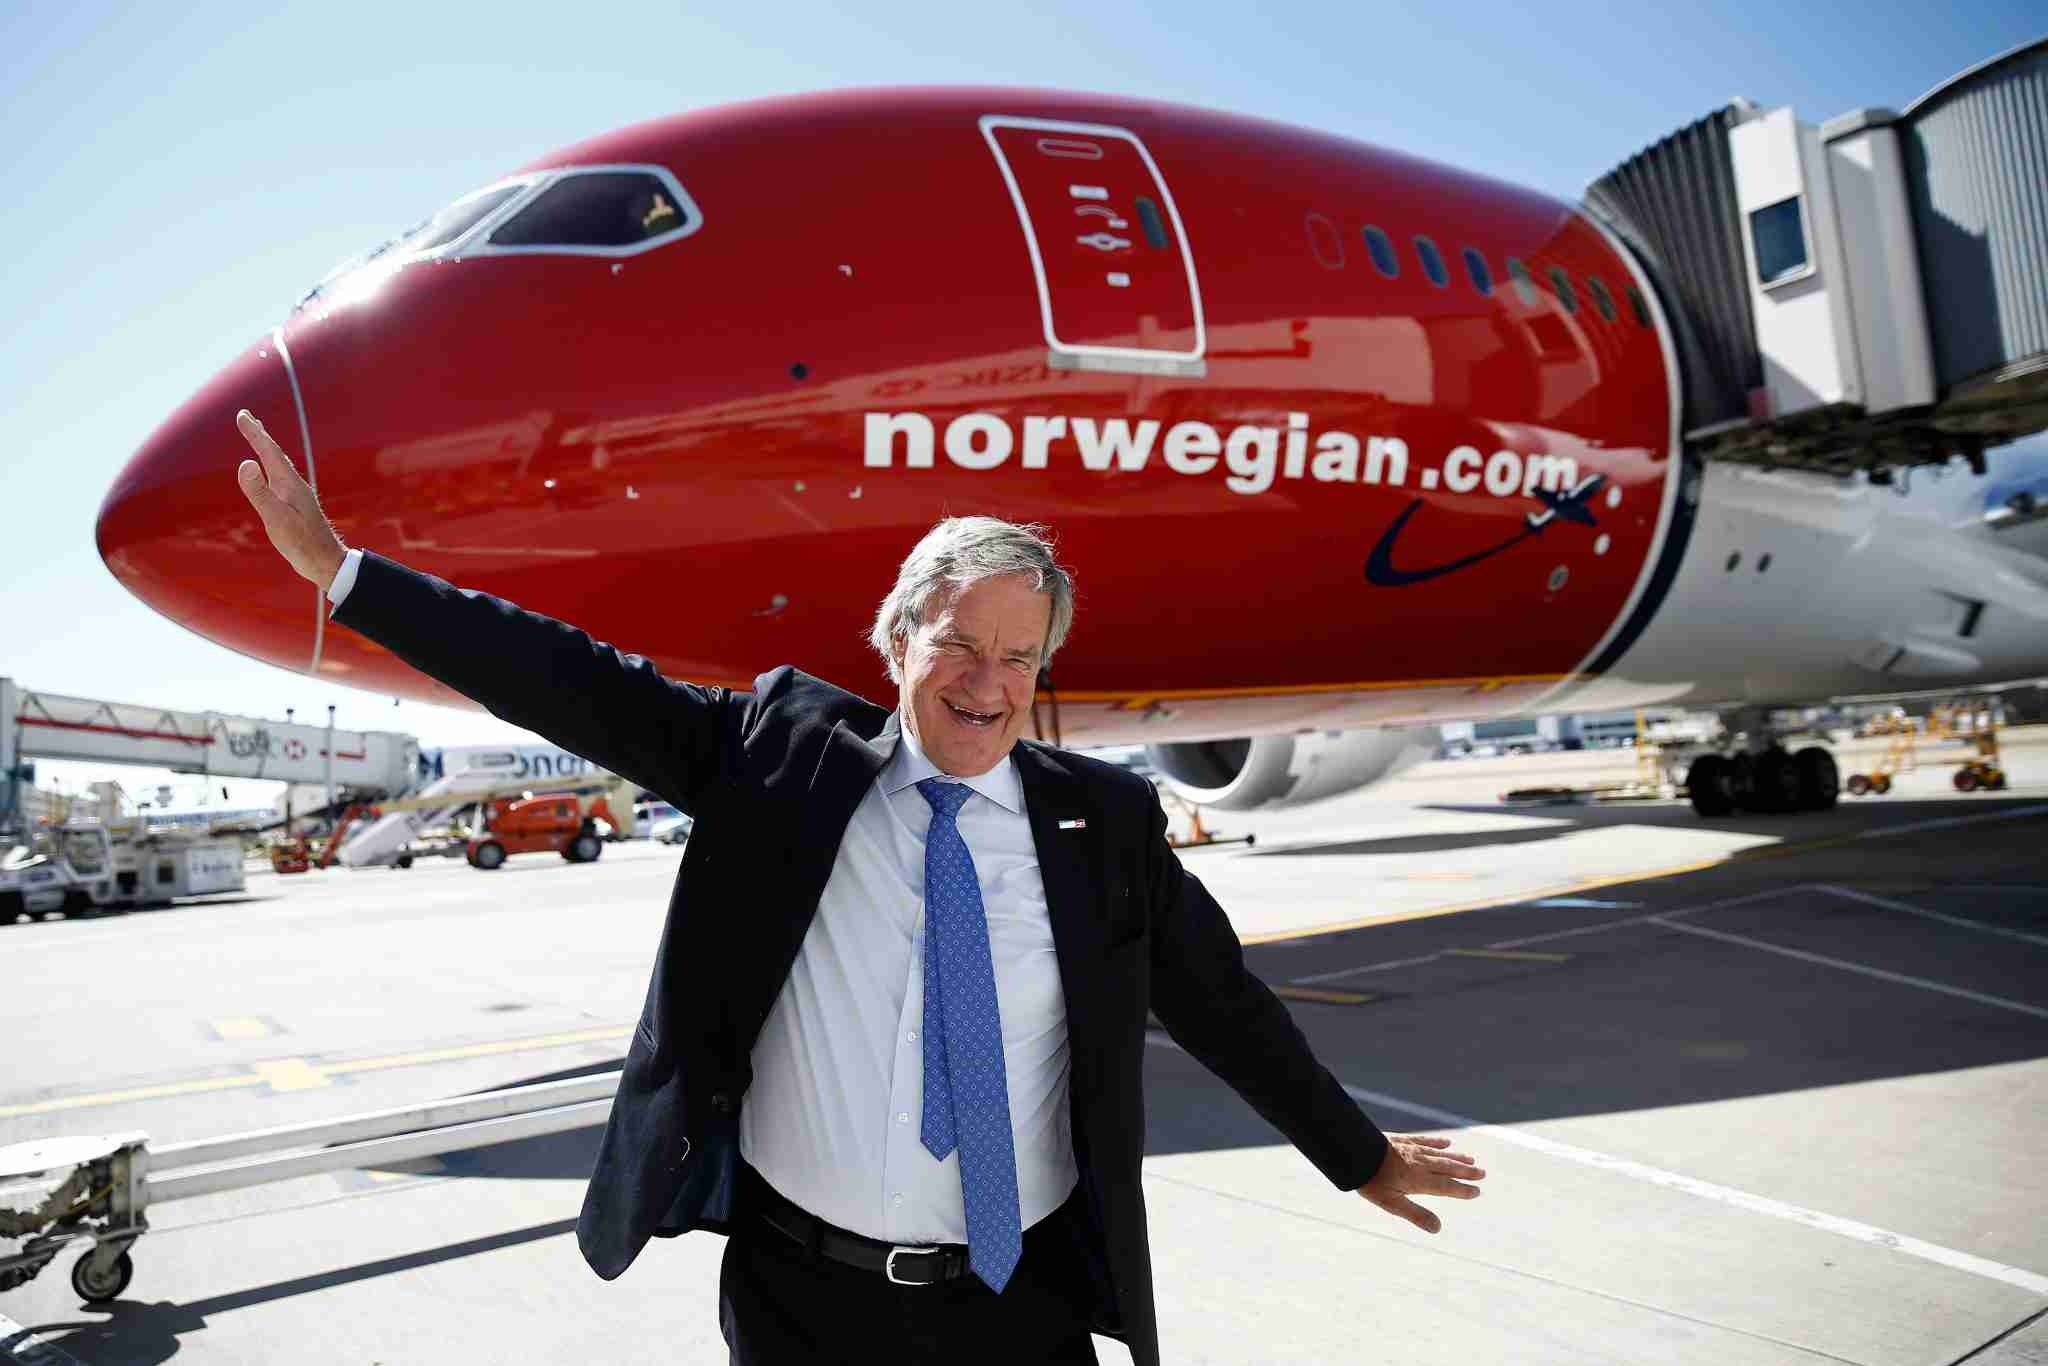 Norwegian Air CEO Bjørn Kjos poses for a photograph with his arms outstretched in front of a Boeing 787 Dreamliner ahead of the company